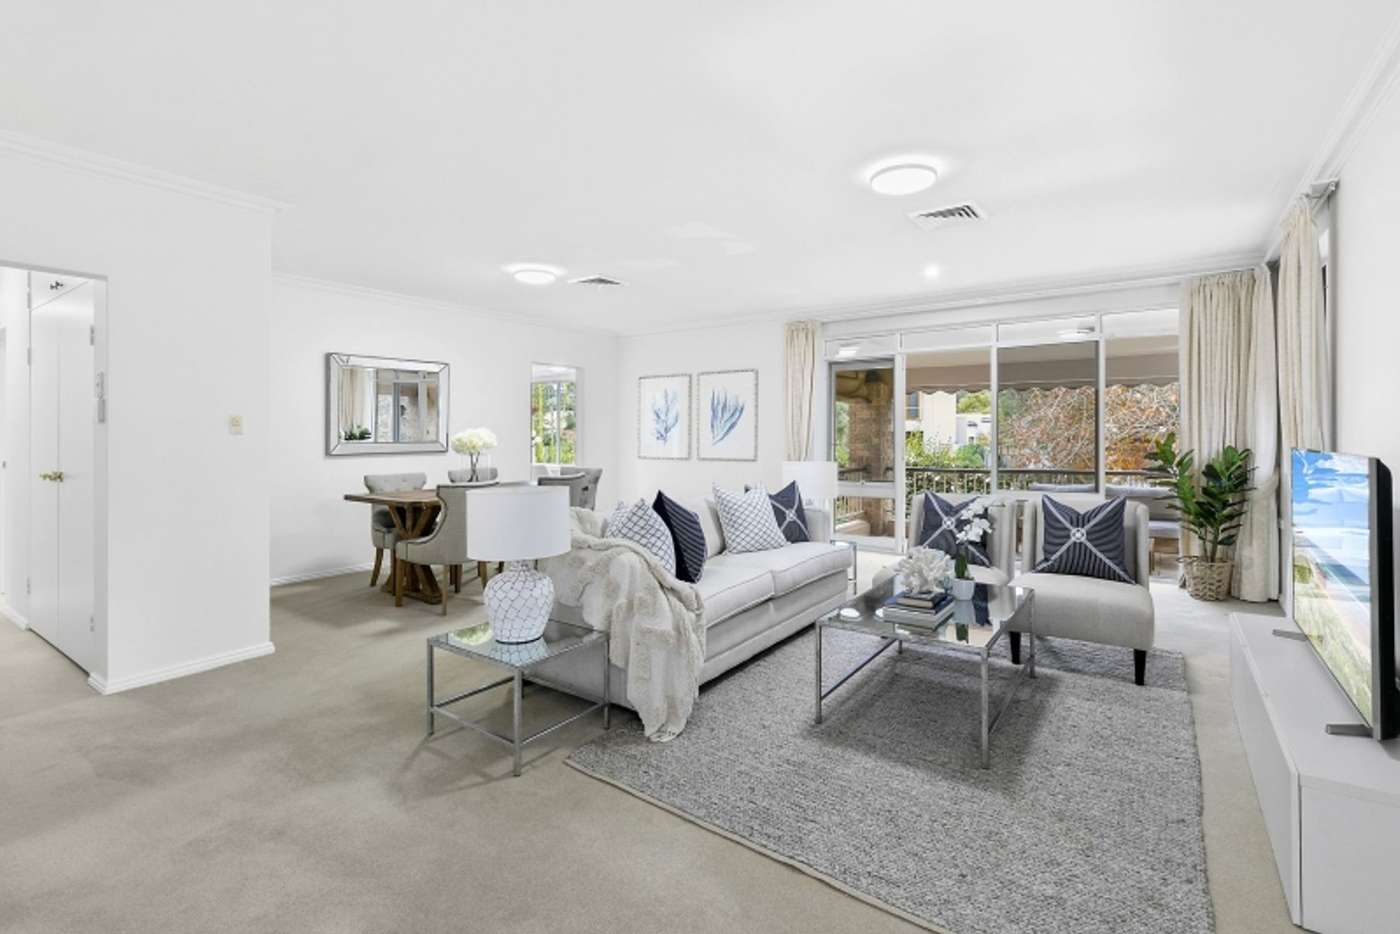 Main view of Homely apartment listing, 12/381 Bobbin Head Road, Turramurra NSW 2074